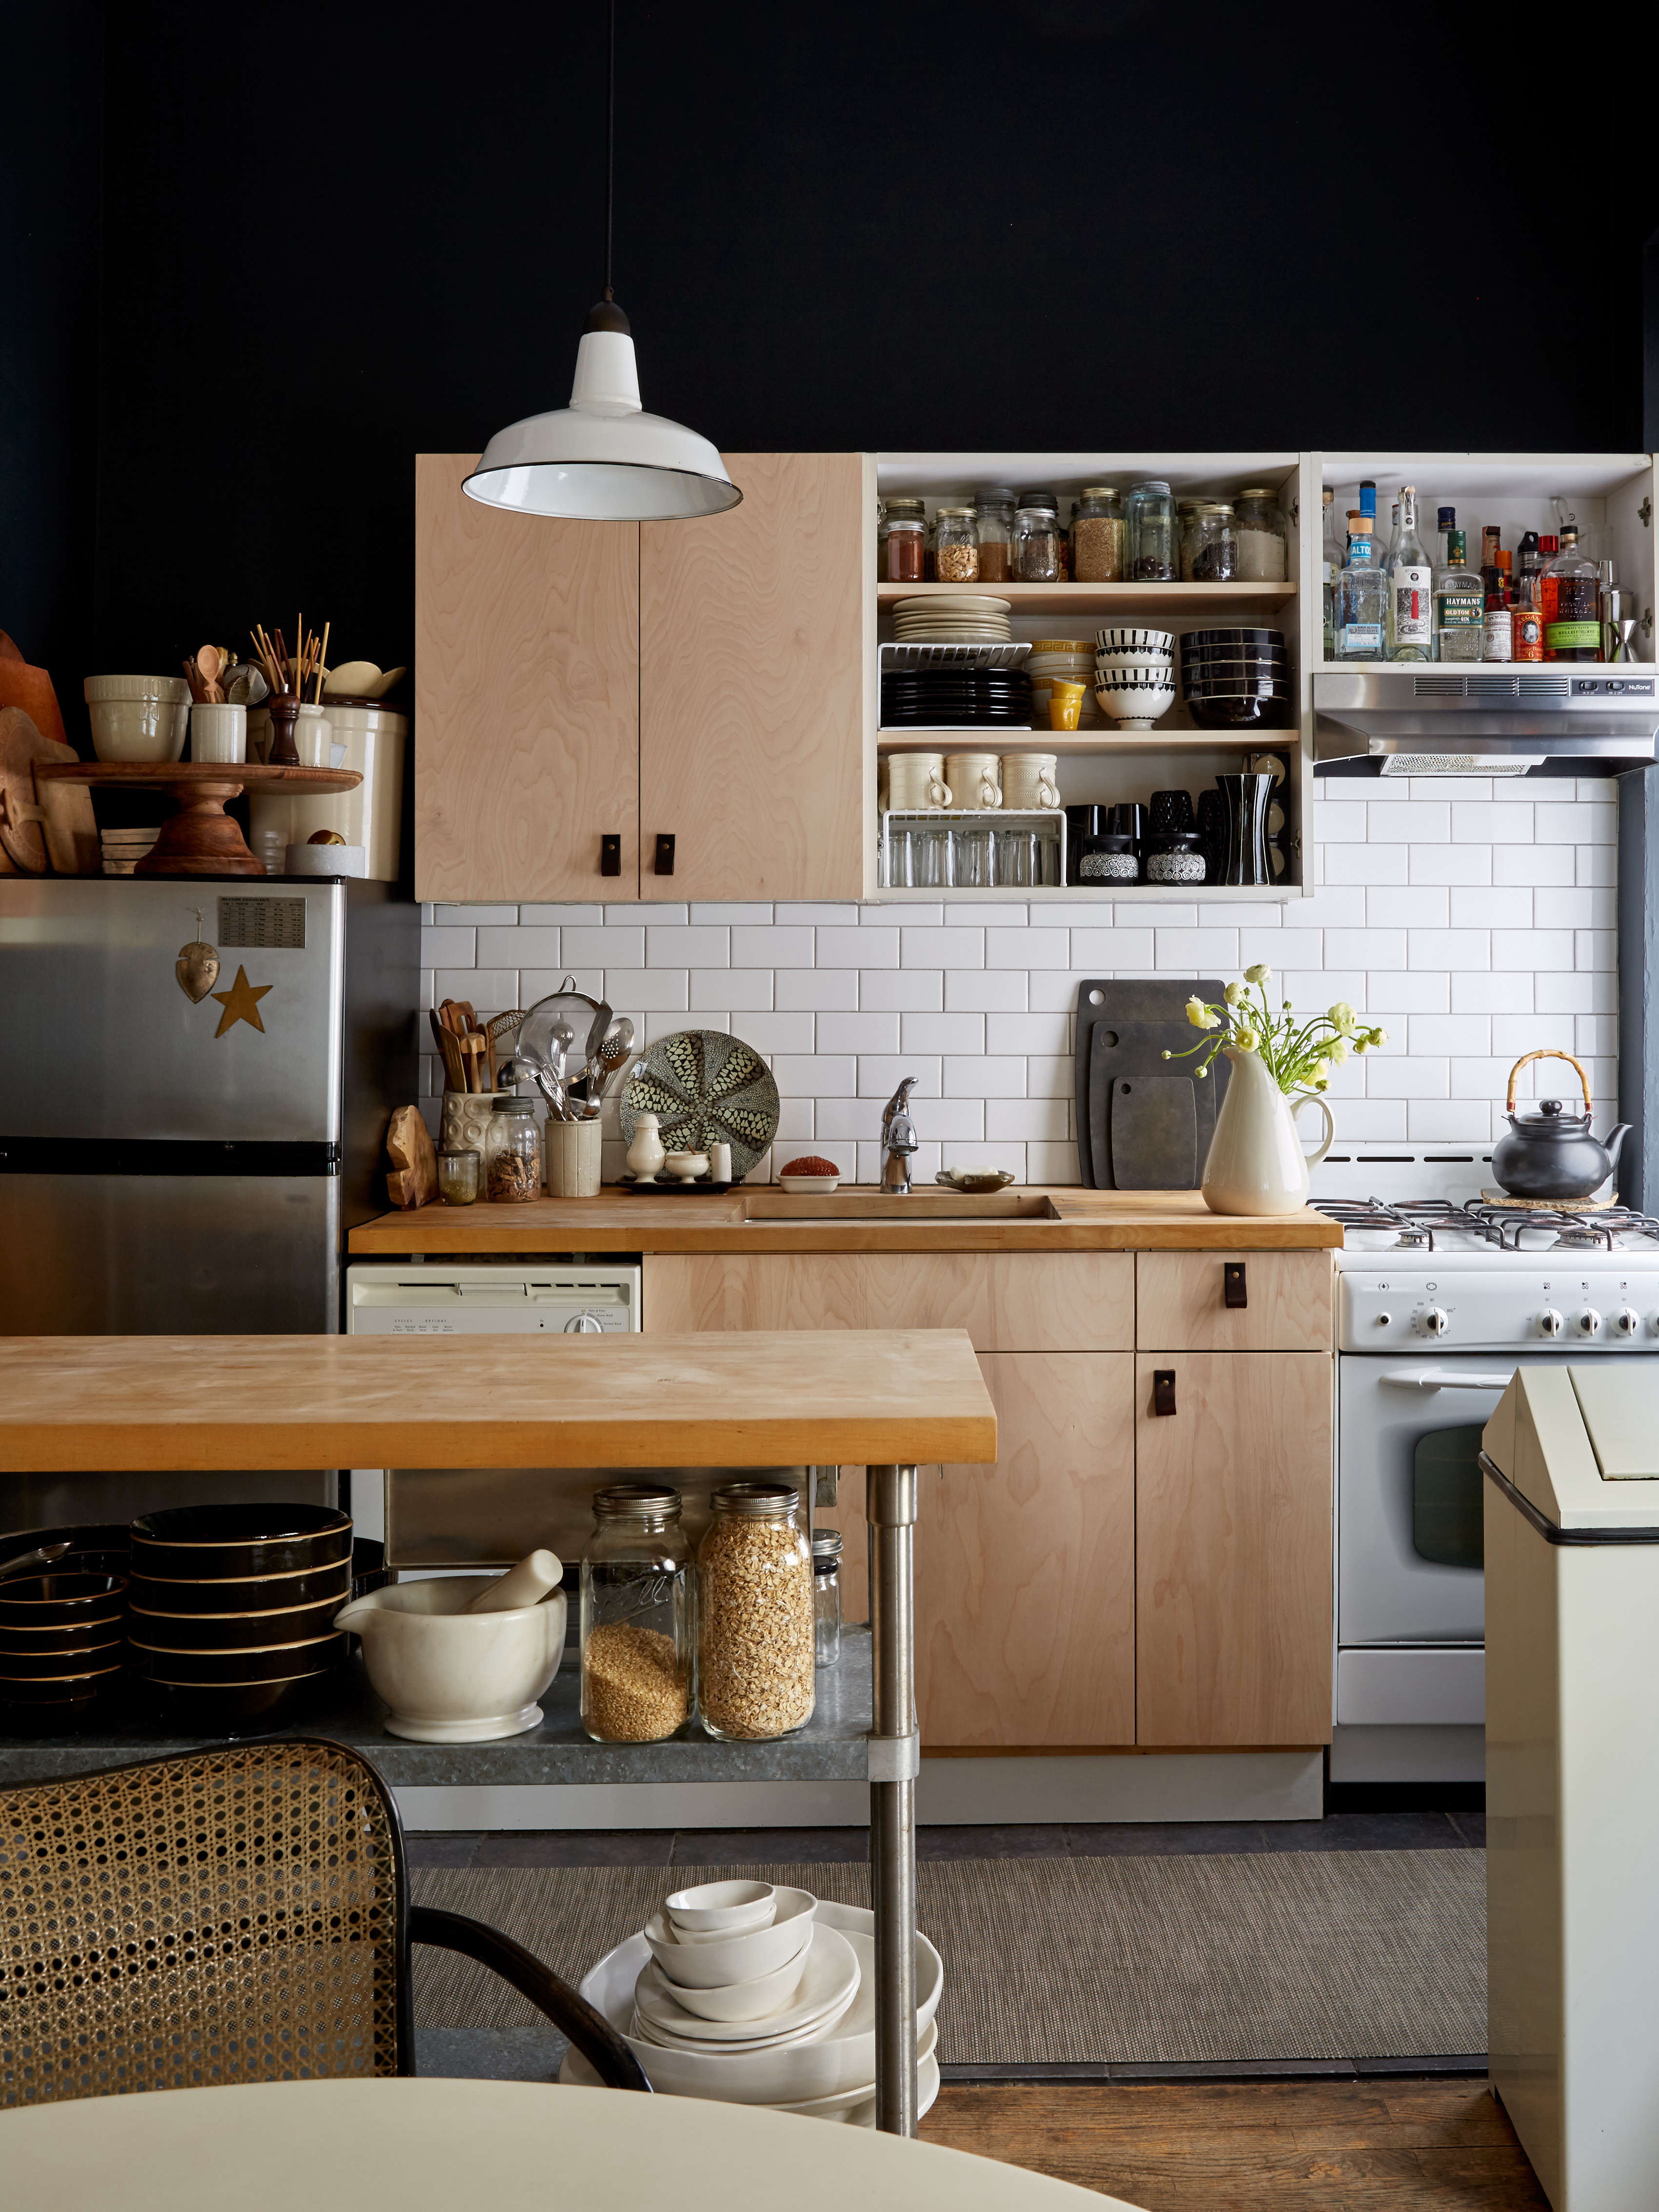 Small-Space Solutions: 17 Affordable Tips from an NYC ...